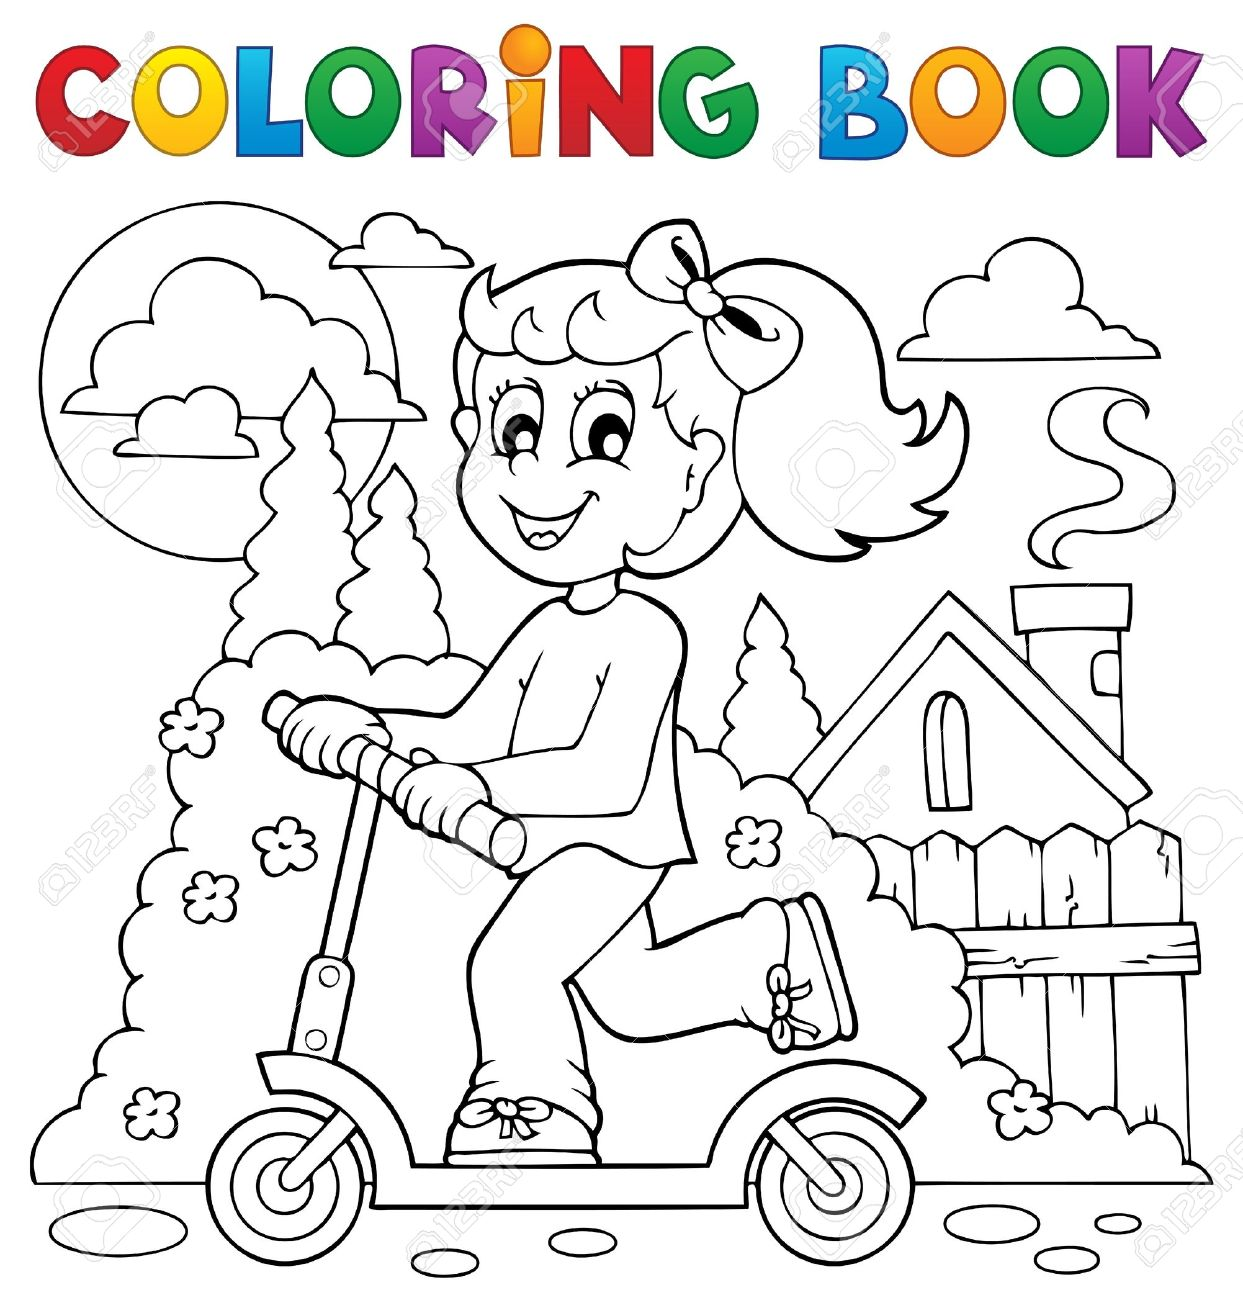 coloring book kids play theme royalty free cliparts vectors and - Colouring Books For Children